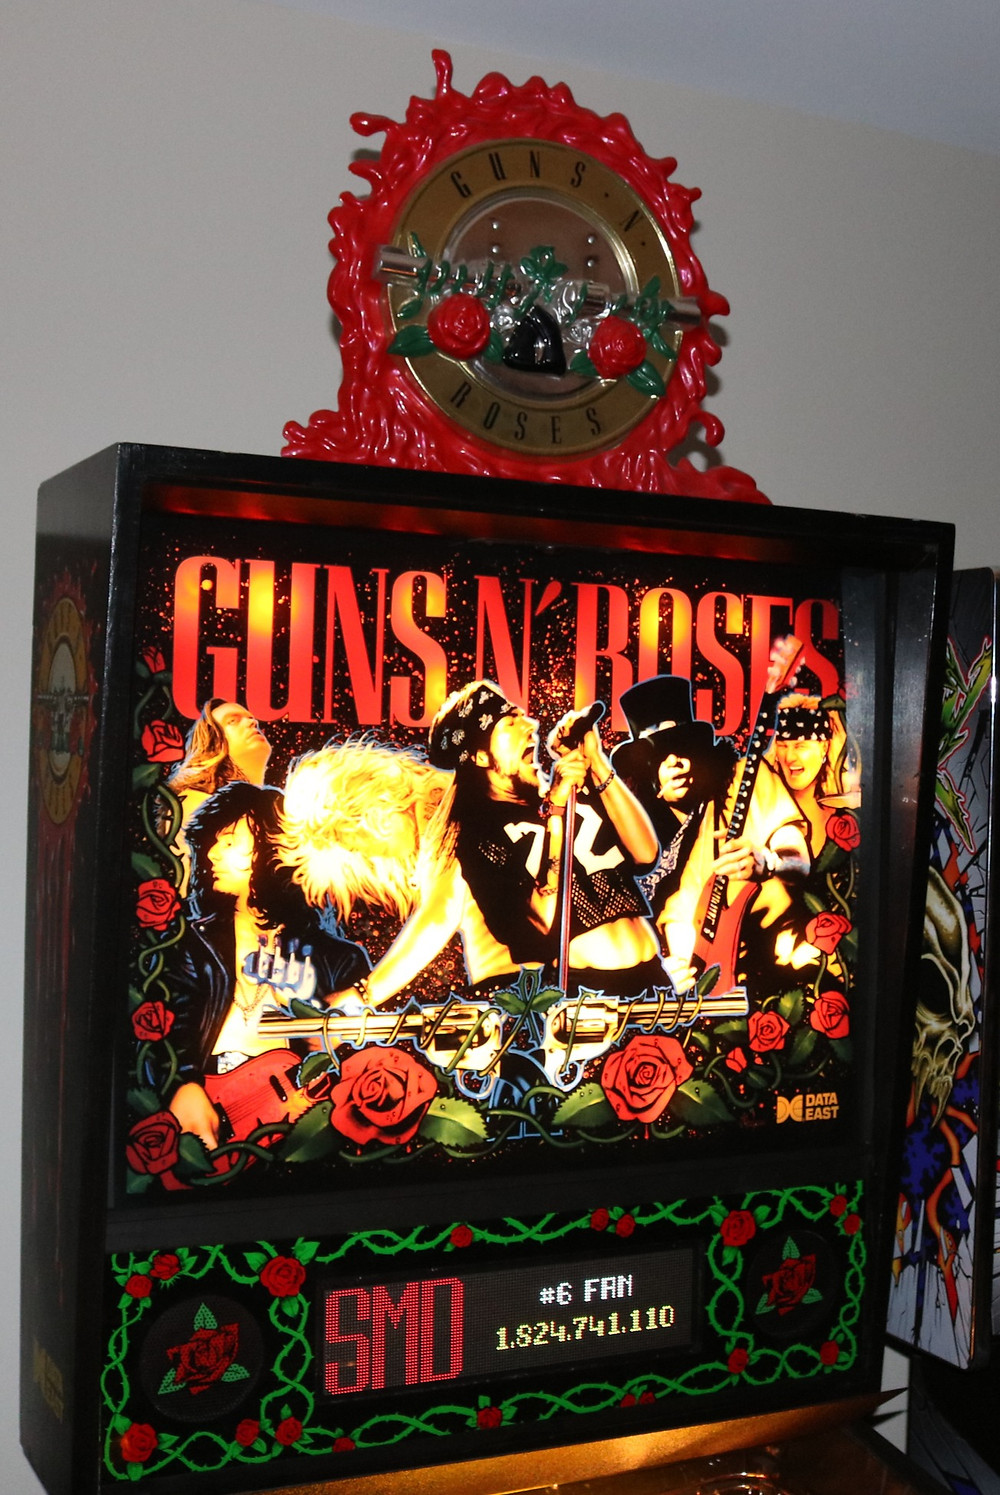 Mirrored Backglass on GNR pinball